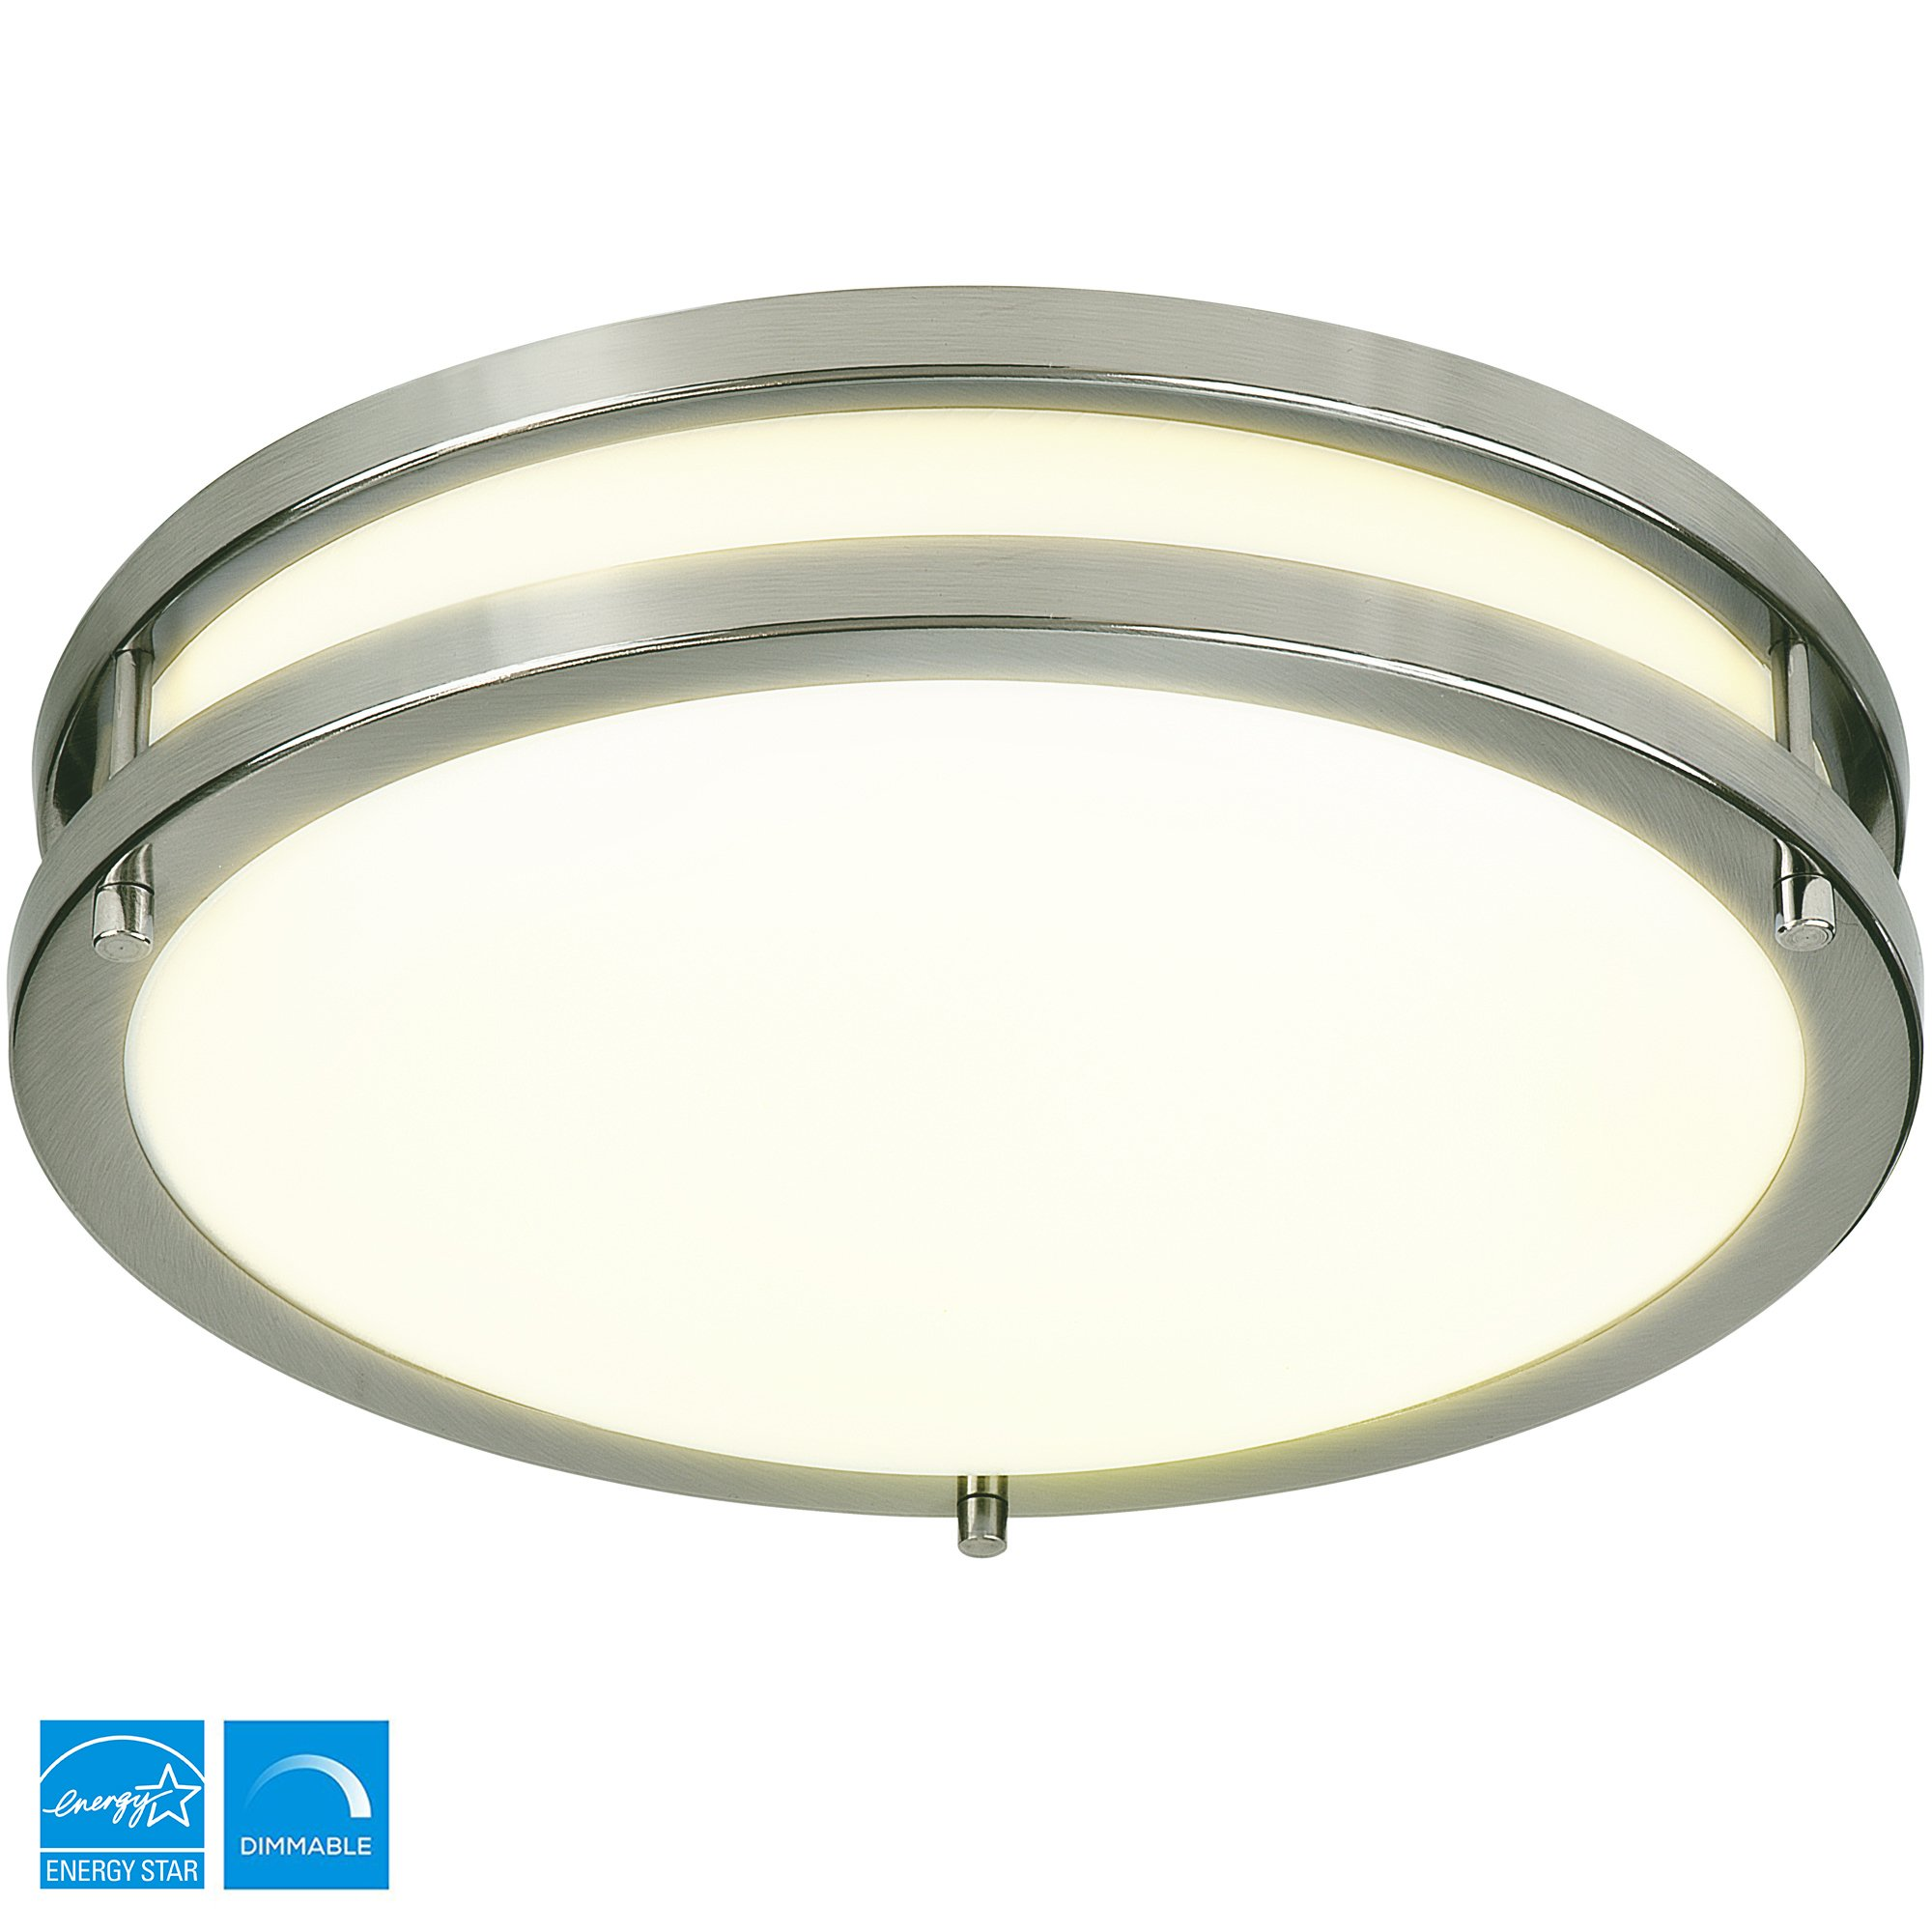 LB72118 LED Flush Mount Ceiling Light, Antique Brushed Nickel, 12-Inch, 15W 3000K Warm White, 1050 Lumens, ETL & DLC Listed, ENERGY STAR, Dimmable